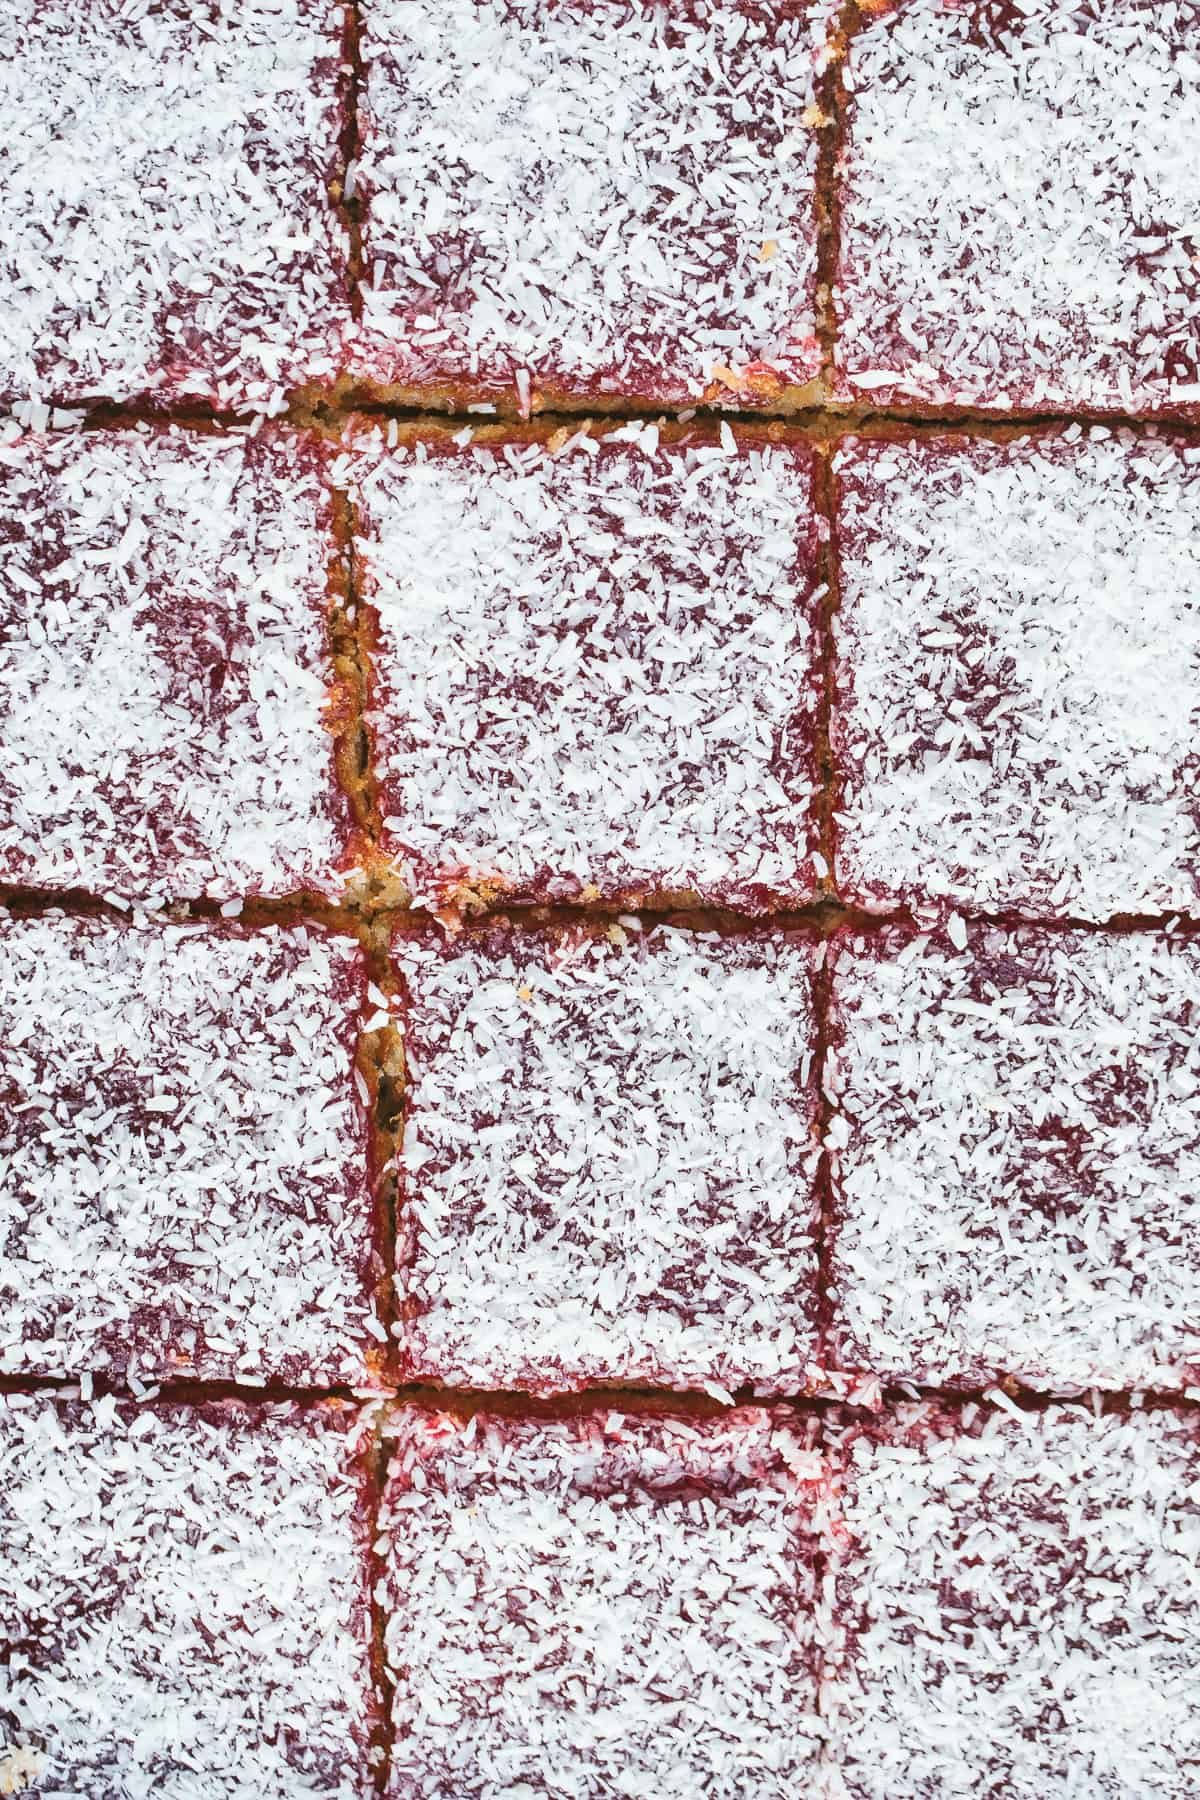 Very close up image of sponge cake with a desiccated coconut topping.